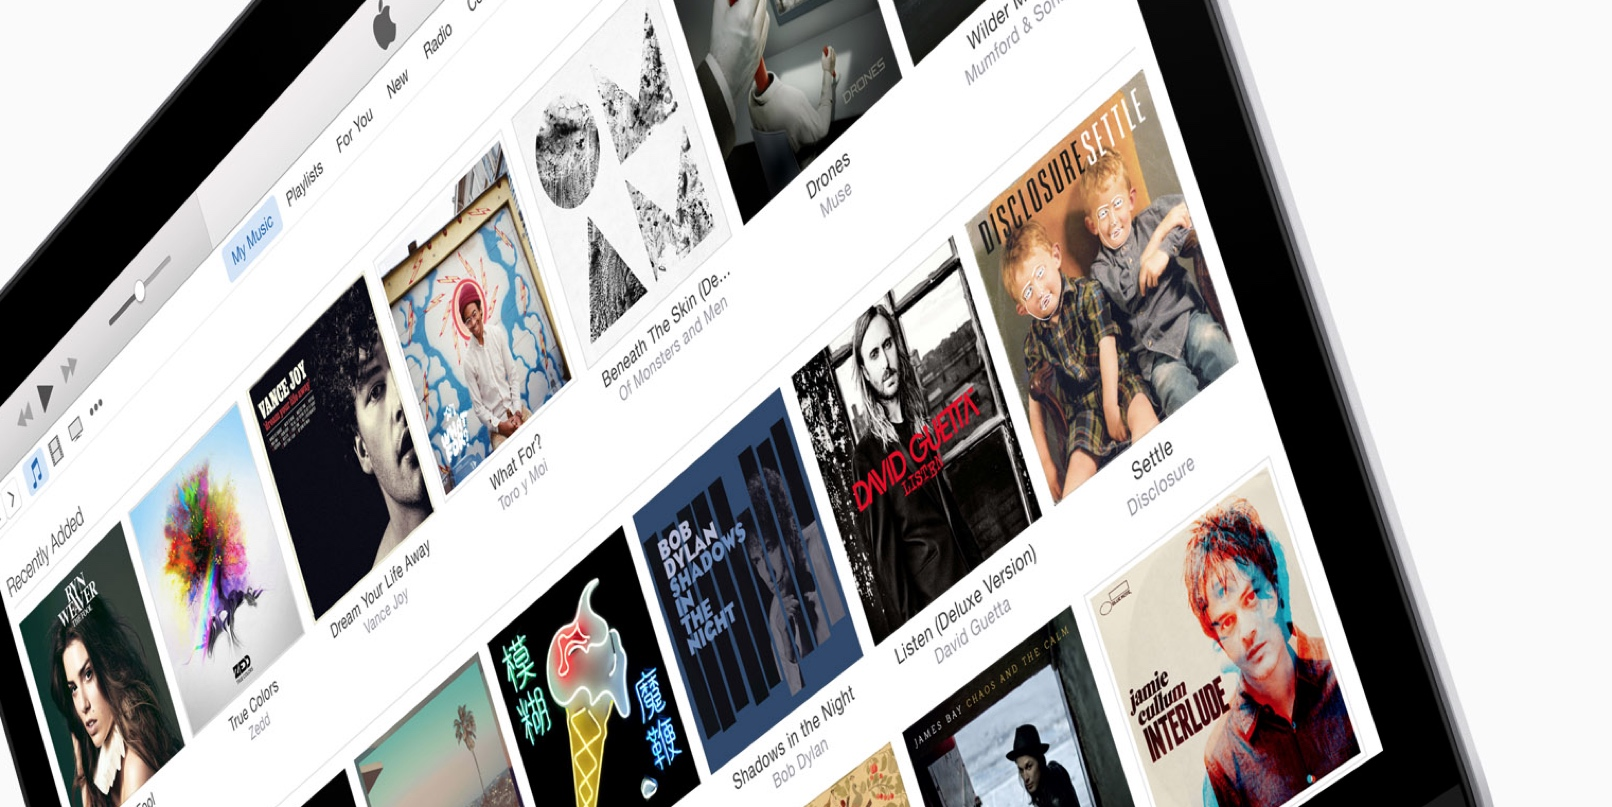 Apple Music: A final nail in the coffin for paid downloads?